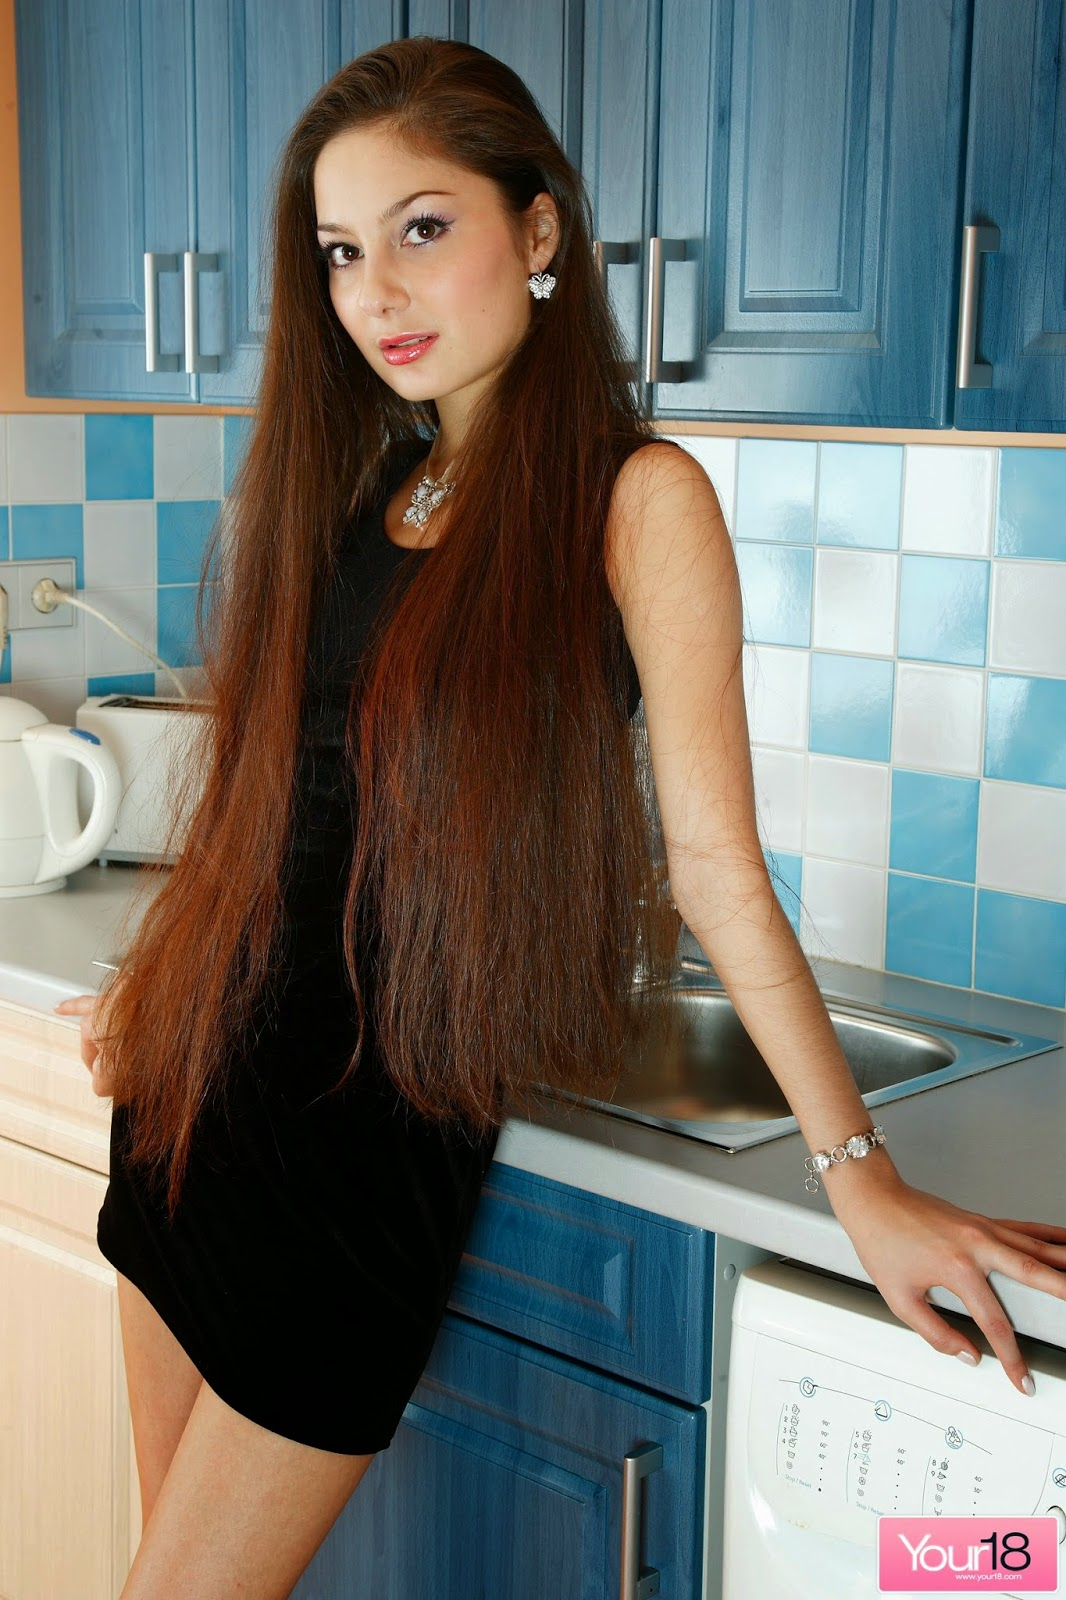 hof asian personals Asian singles and personals on the best asian dating site meet single asian guys and asian women find your mr right or gorgeous asian bride right now.